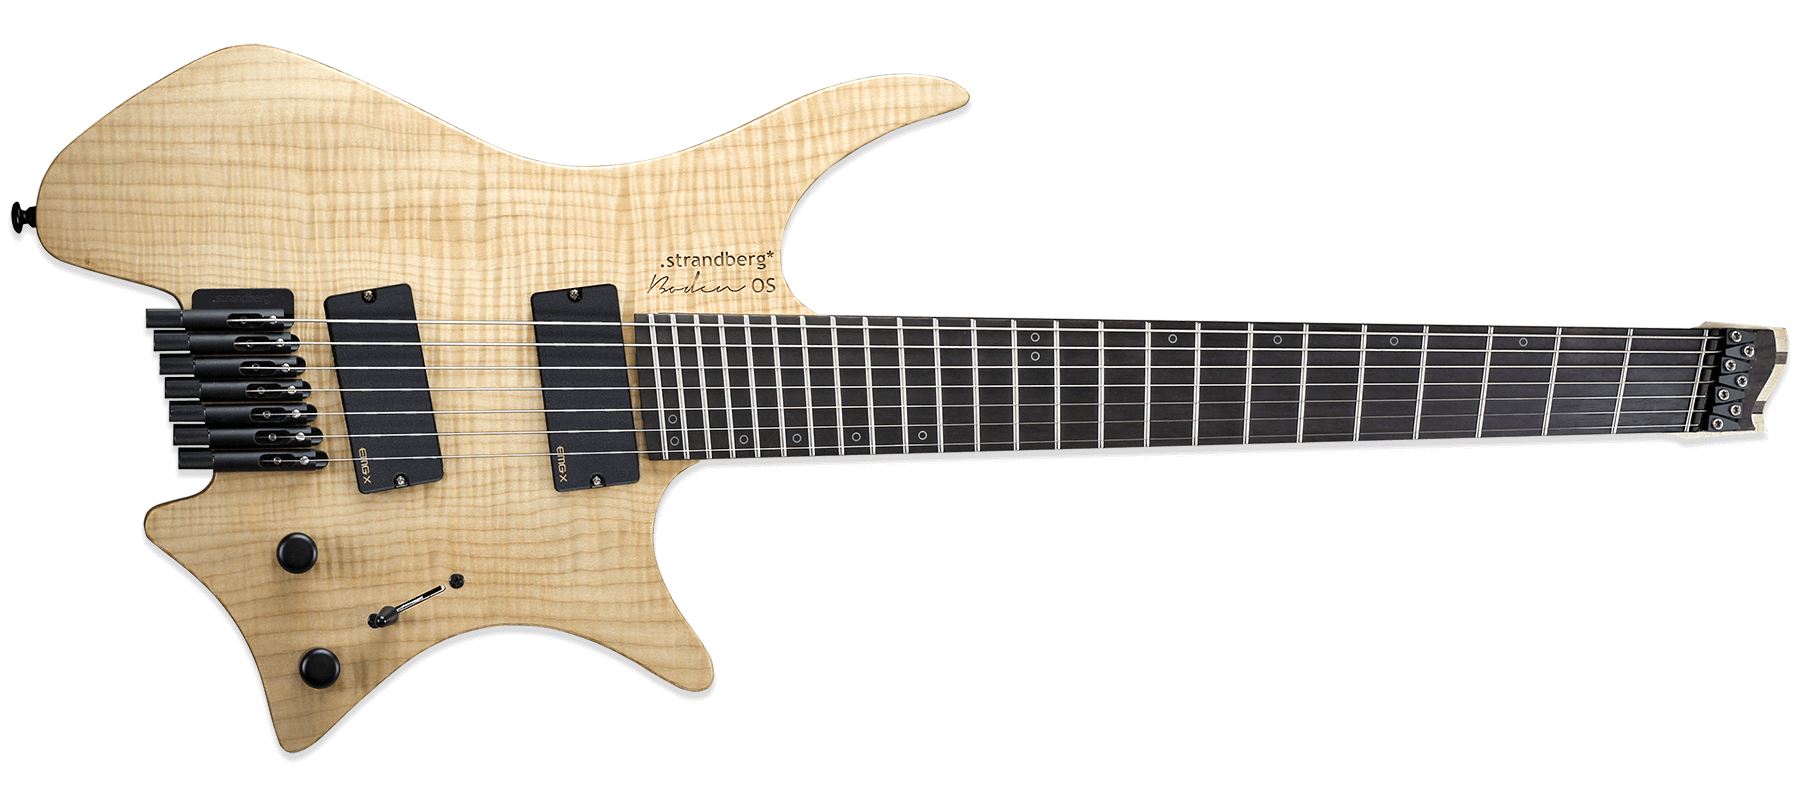 Strandberg boden os 7 guitar planet for Strandberg boden 6